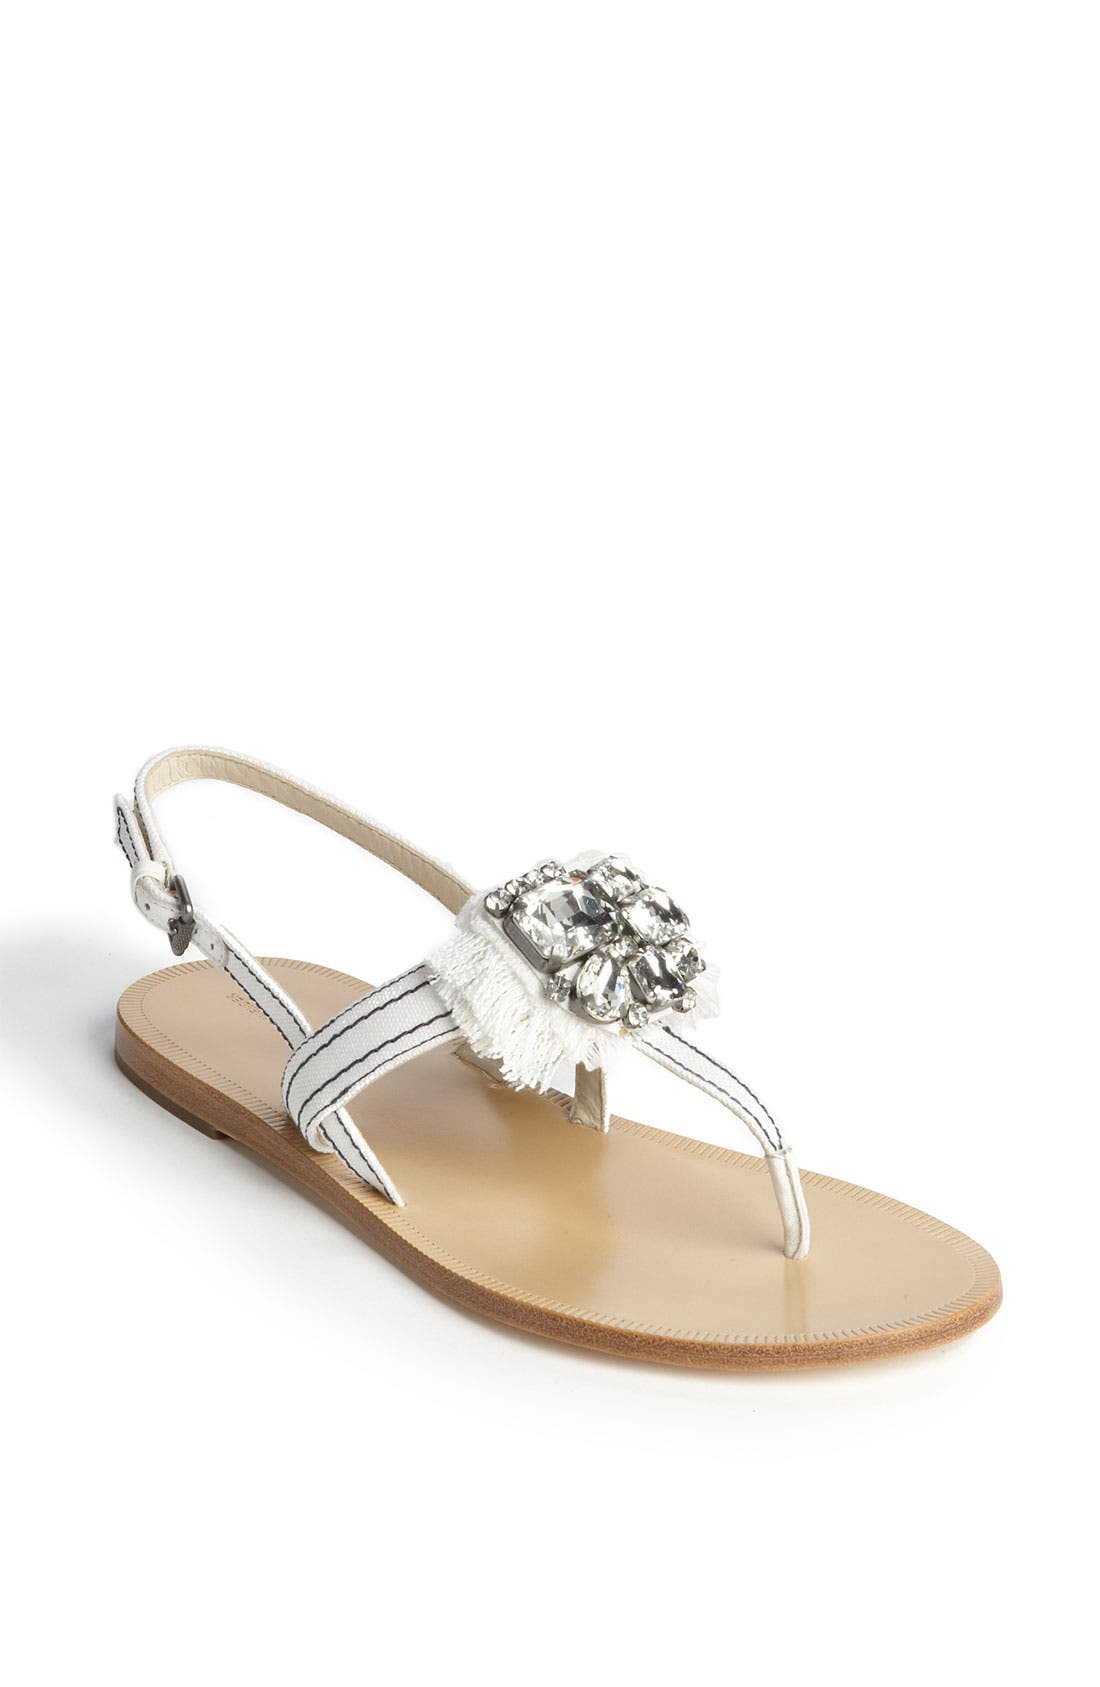 Alternate Image 1 Selected - Vera Wang Footwear 'Robbie' Sandal